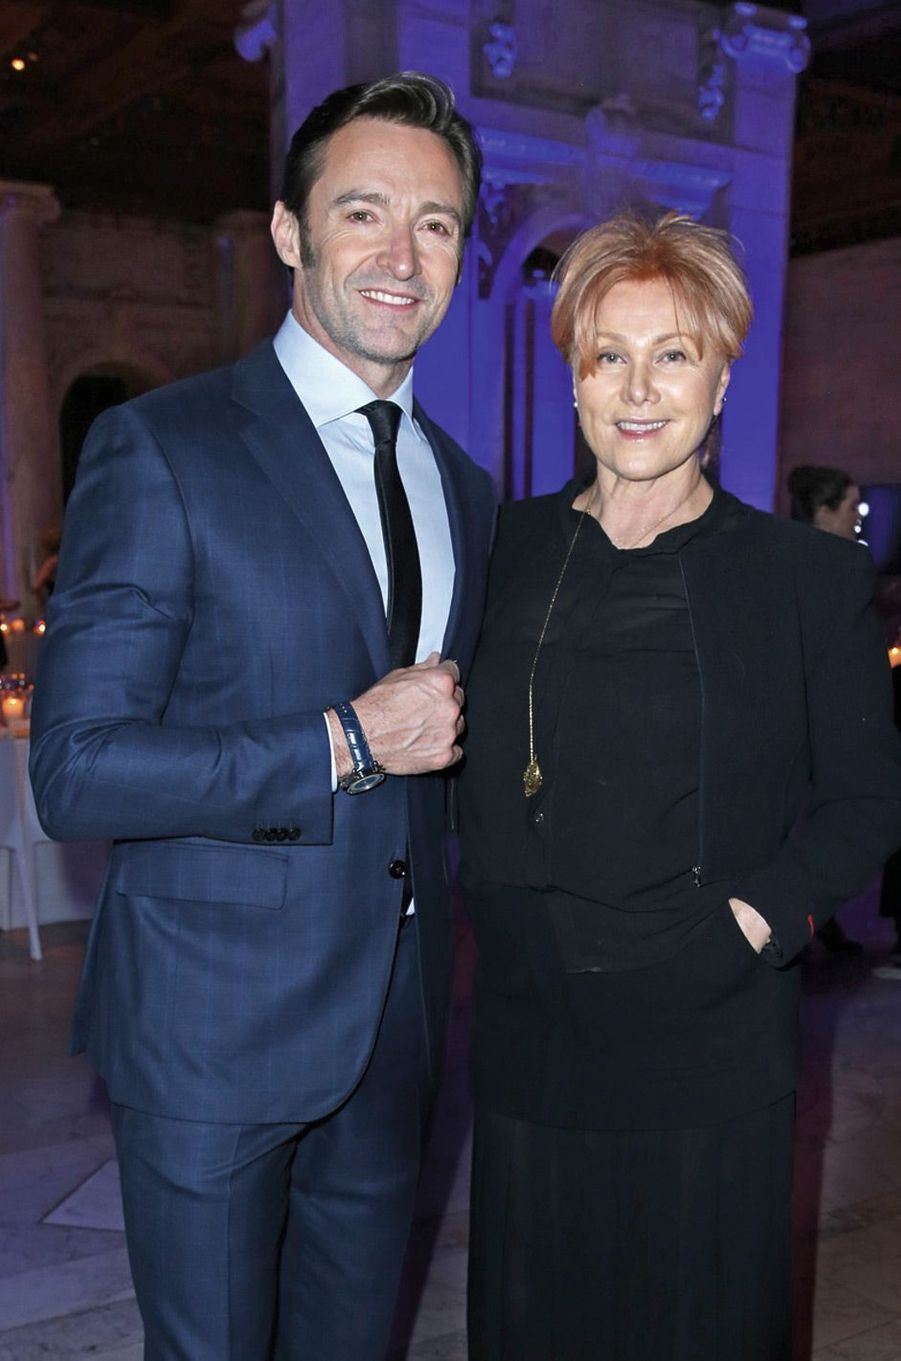 Hugh Jackman et son épouse, Deborra-Lee Furness.